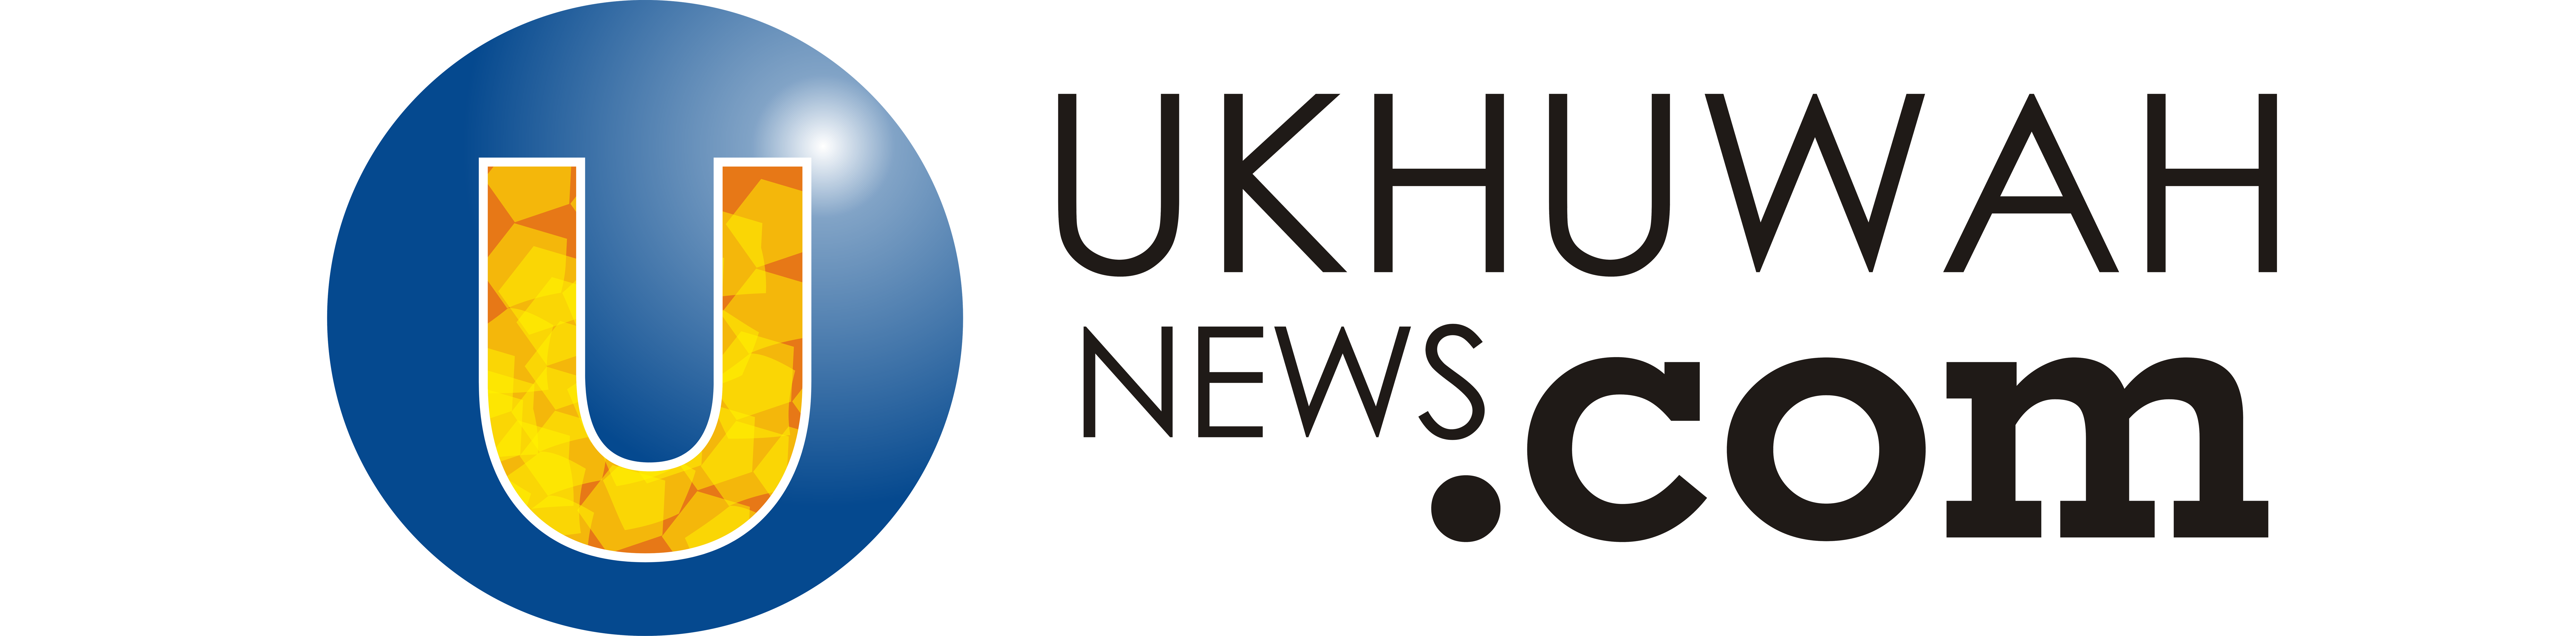 Ukhuwah News